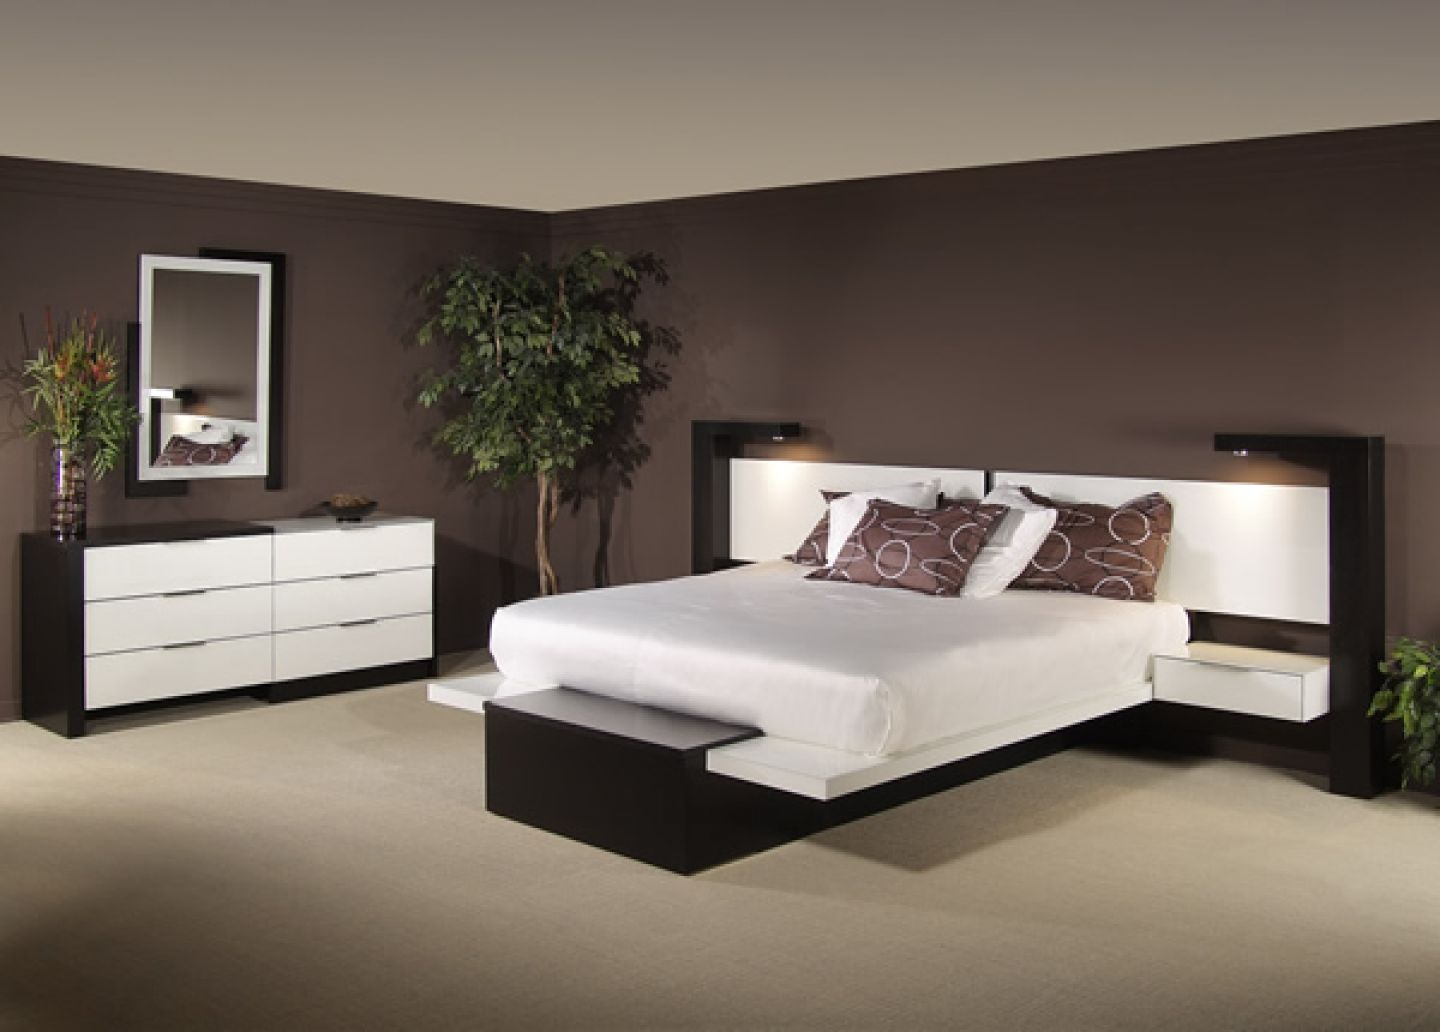 Bedroom Sets Modern Style contemporary furniture designs ideas | bedroom furniture